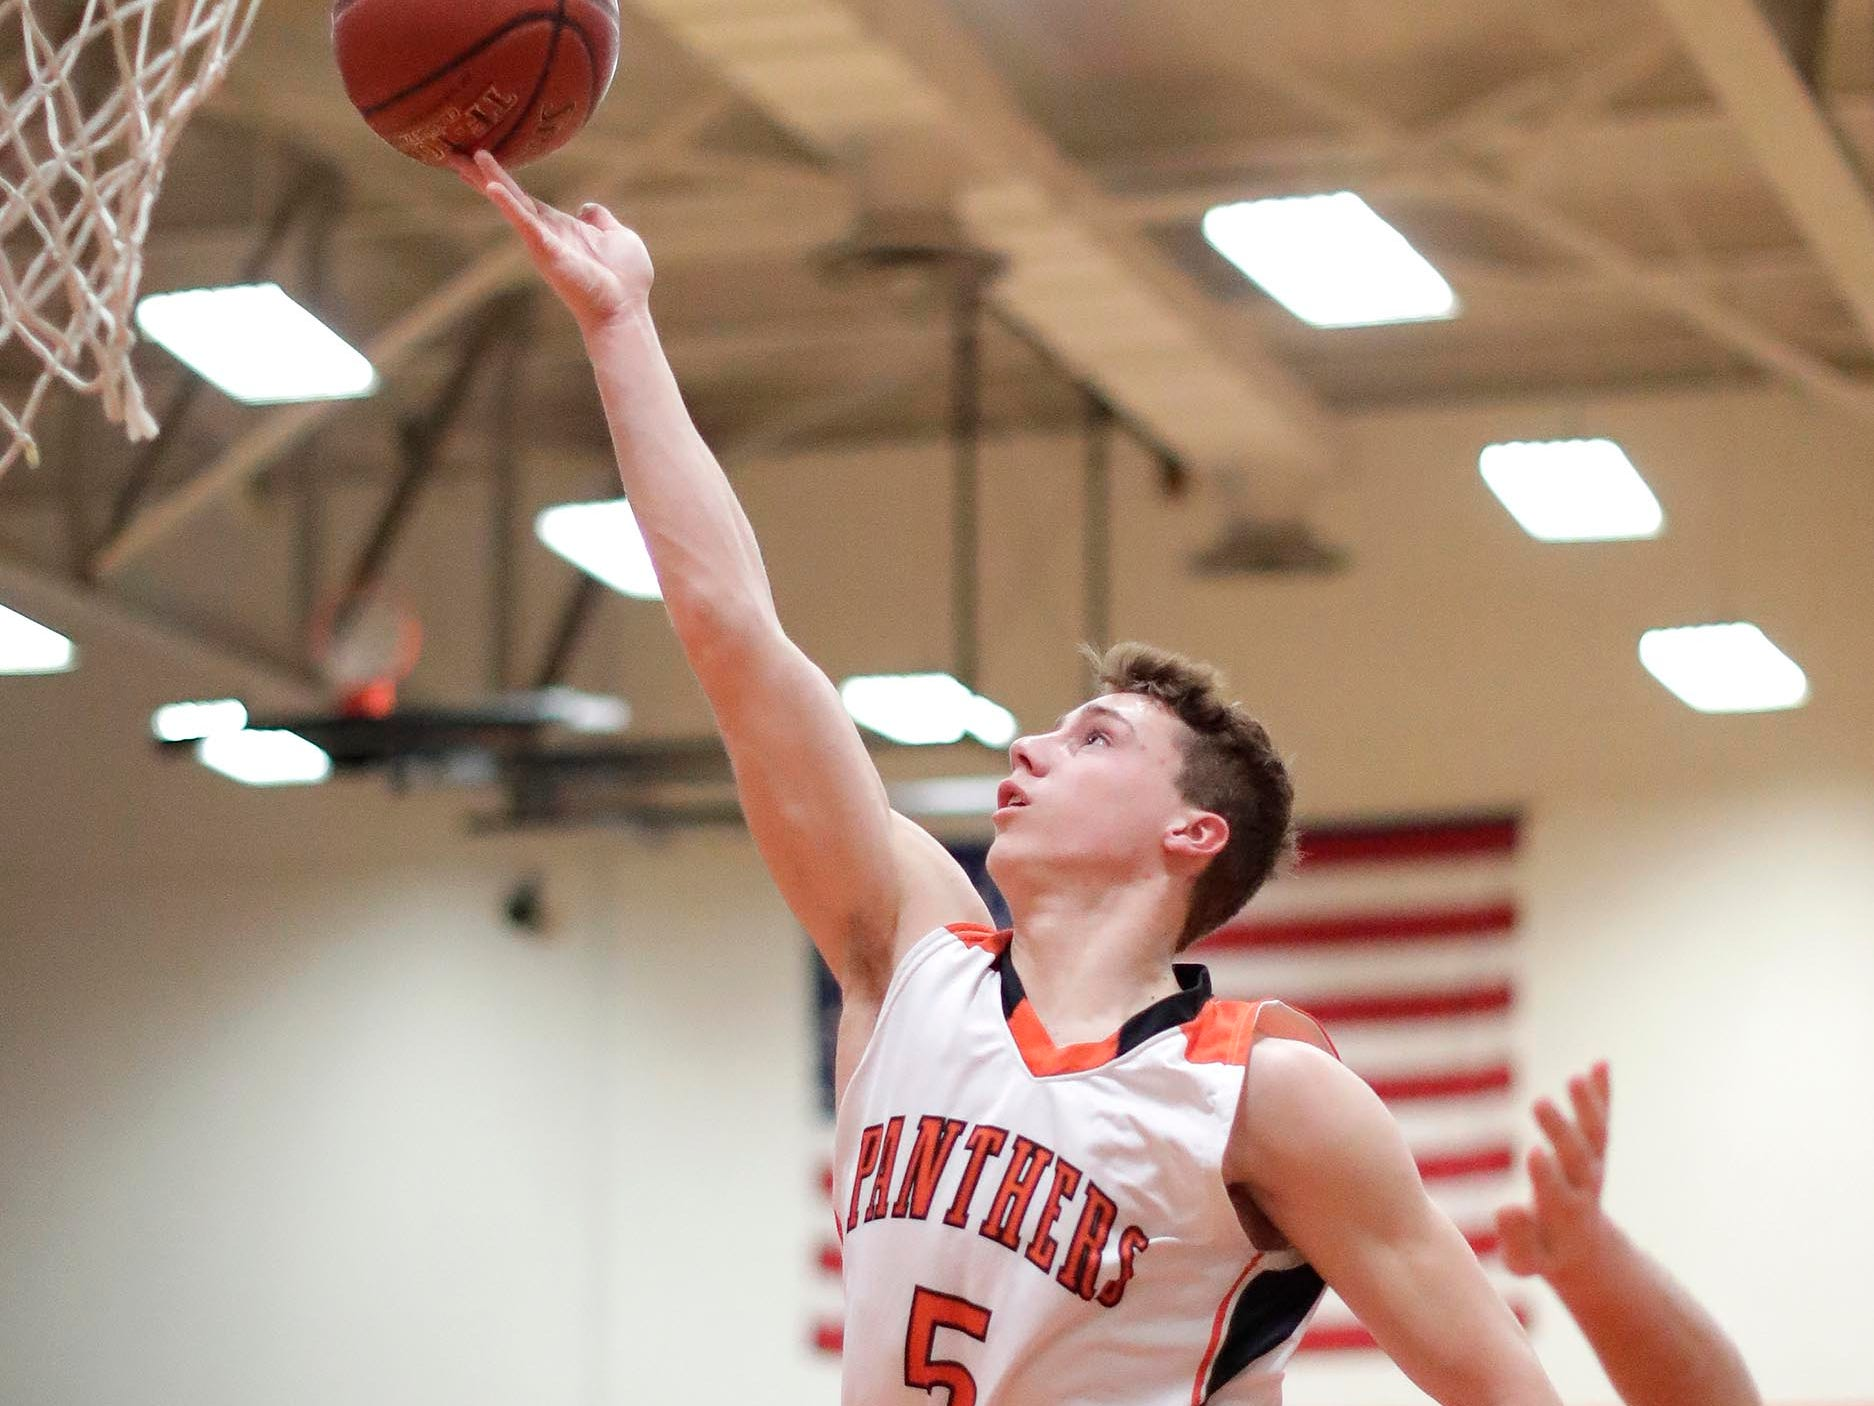 Plymouth's Sam Shutter (5) aims for the basket against Winneconne, Wednesday, February 21, 2019, in Plymouth, Wis.